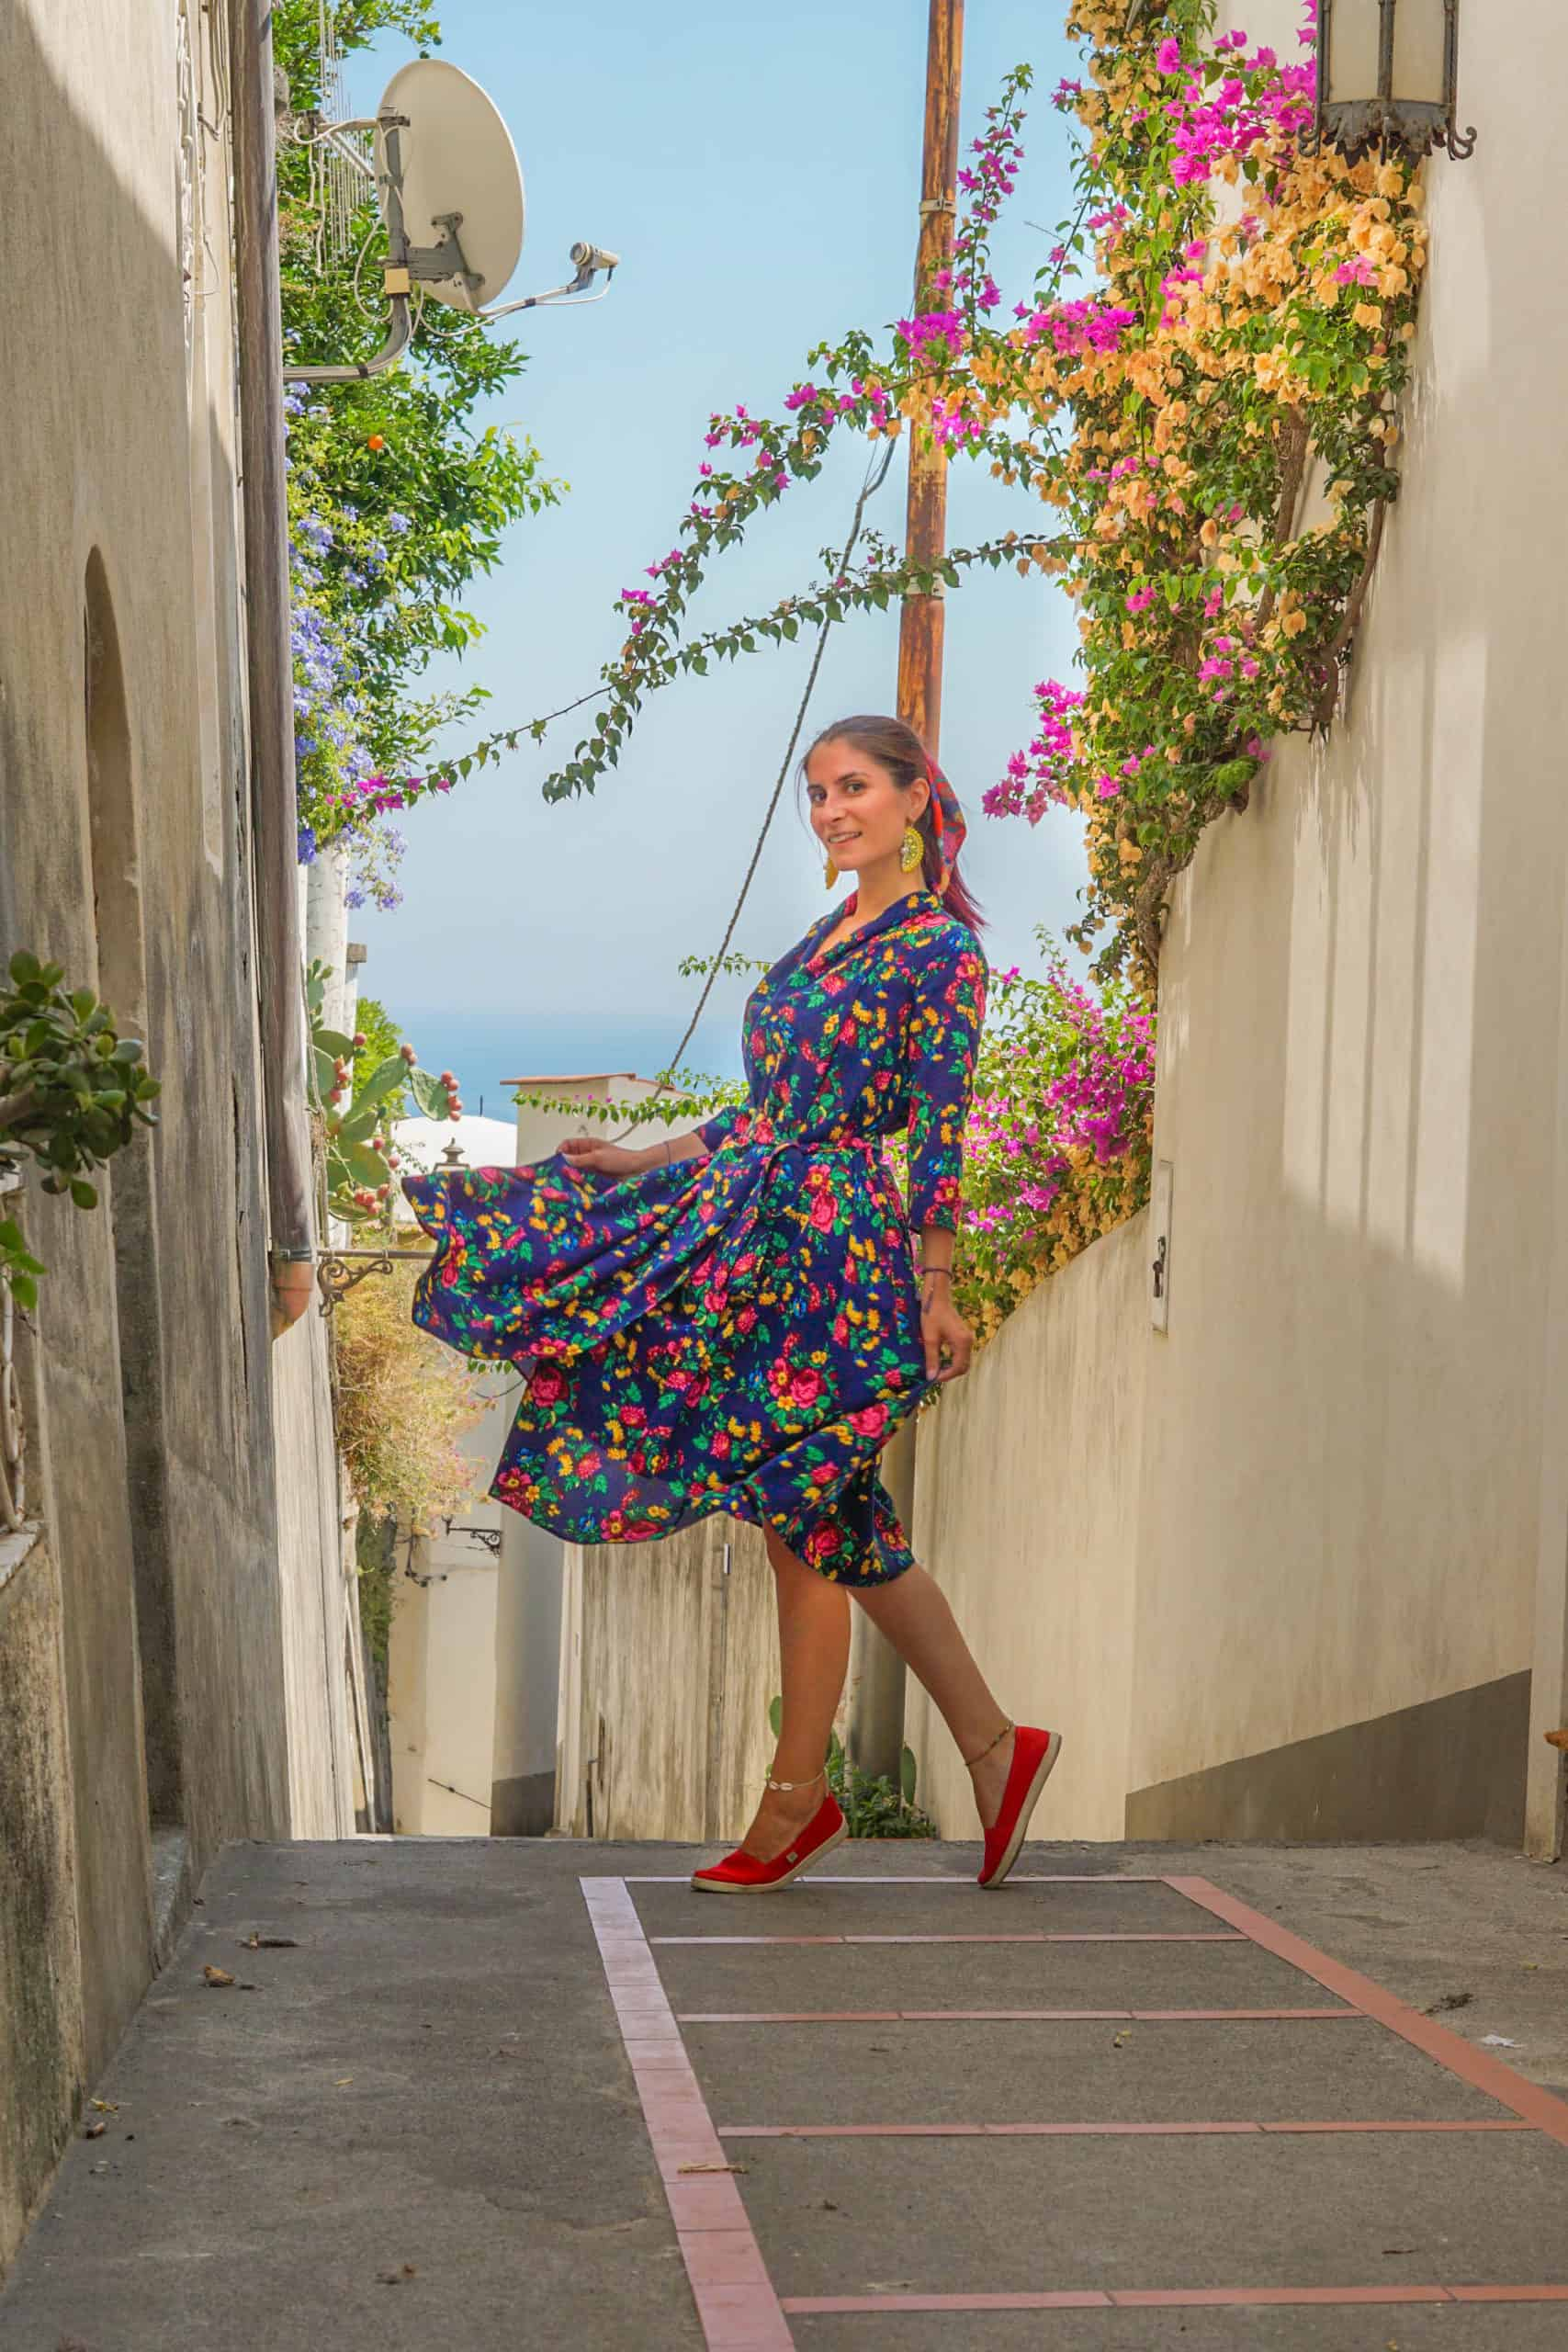 Narrow streets of Positano with flowers